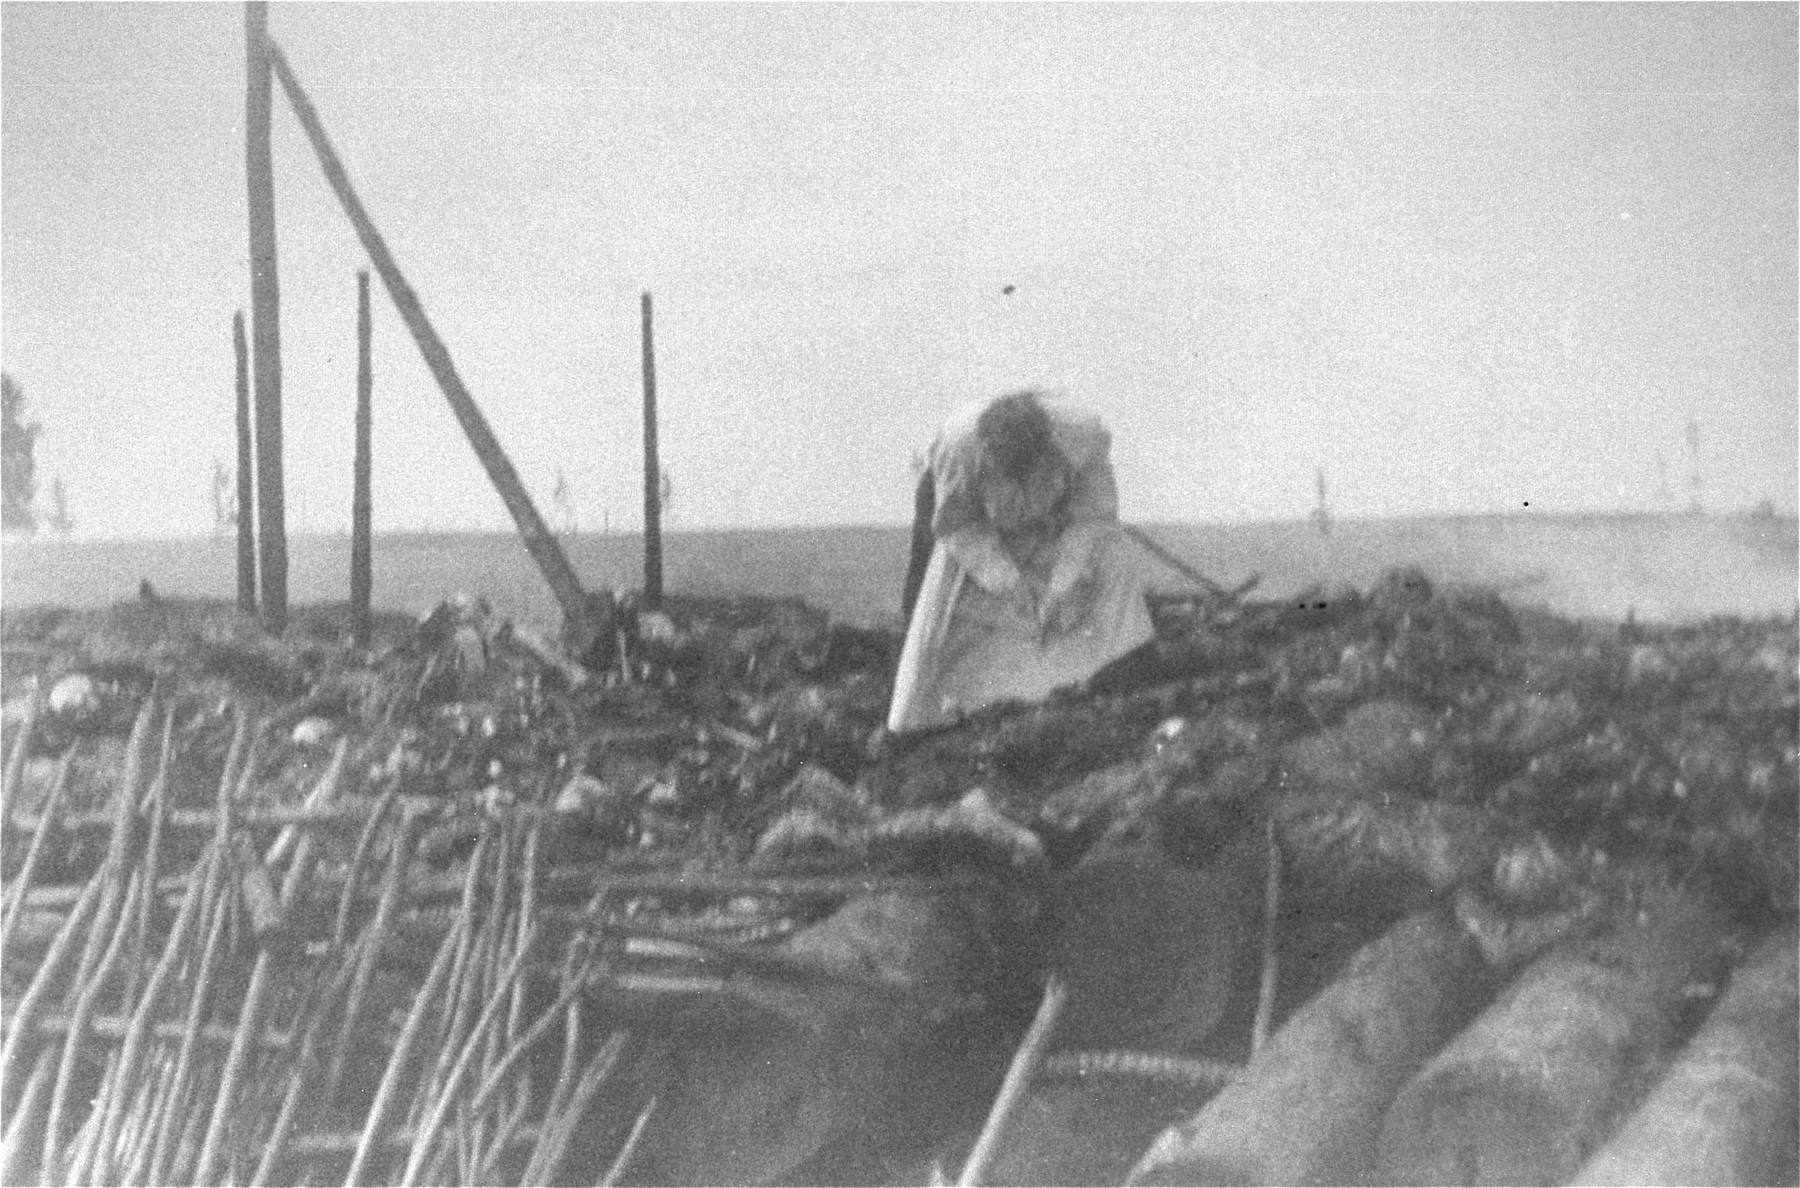 A member of a Soviet investigating team views the remains of Jewish victims burned in a barn by the Germans near the Maly Trostinets concentration camp.